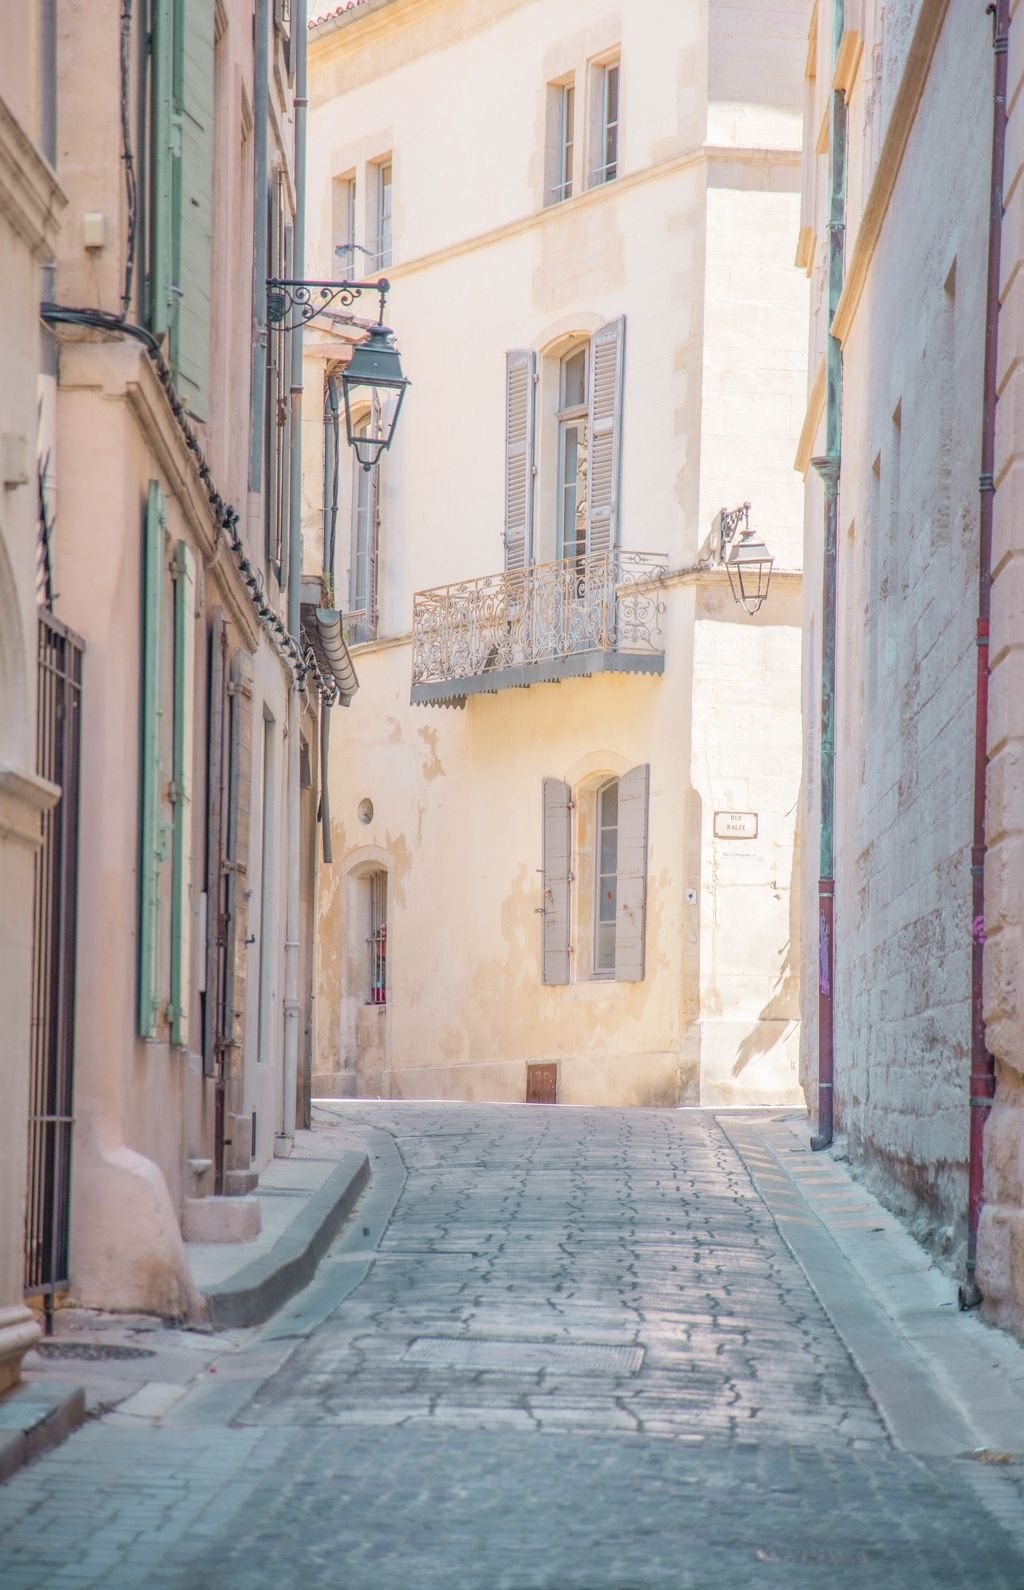 Arles in Provence shared by Coco Kliks from Travellur